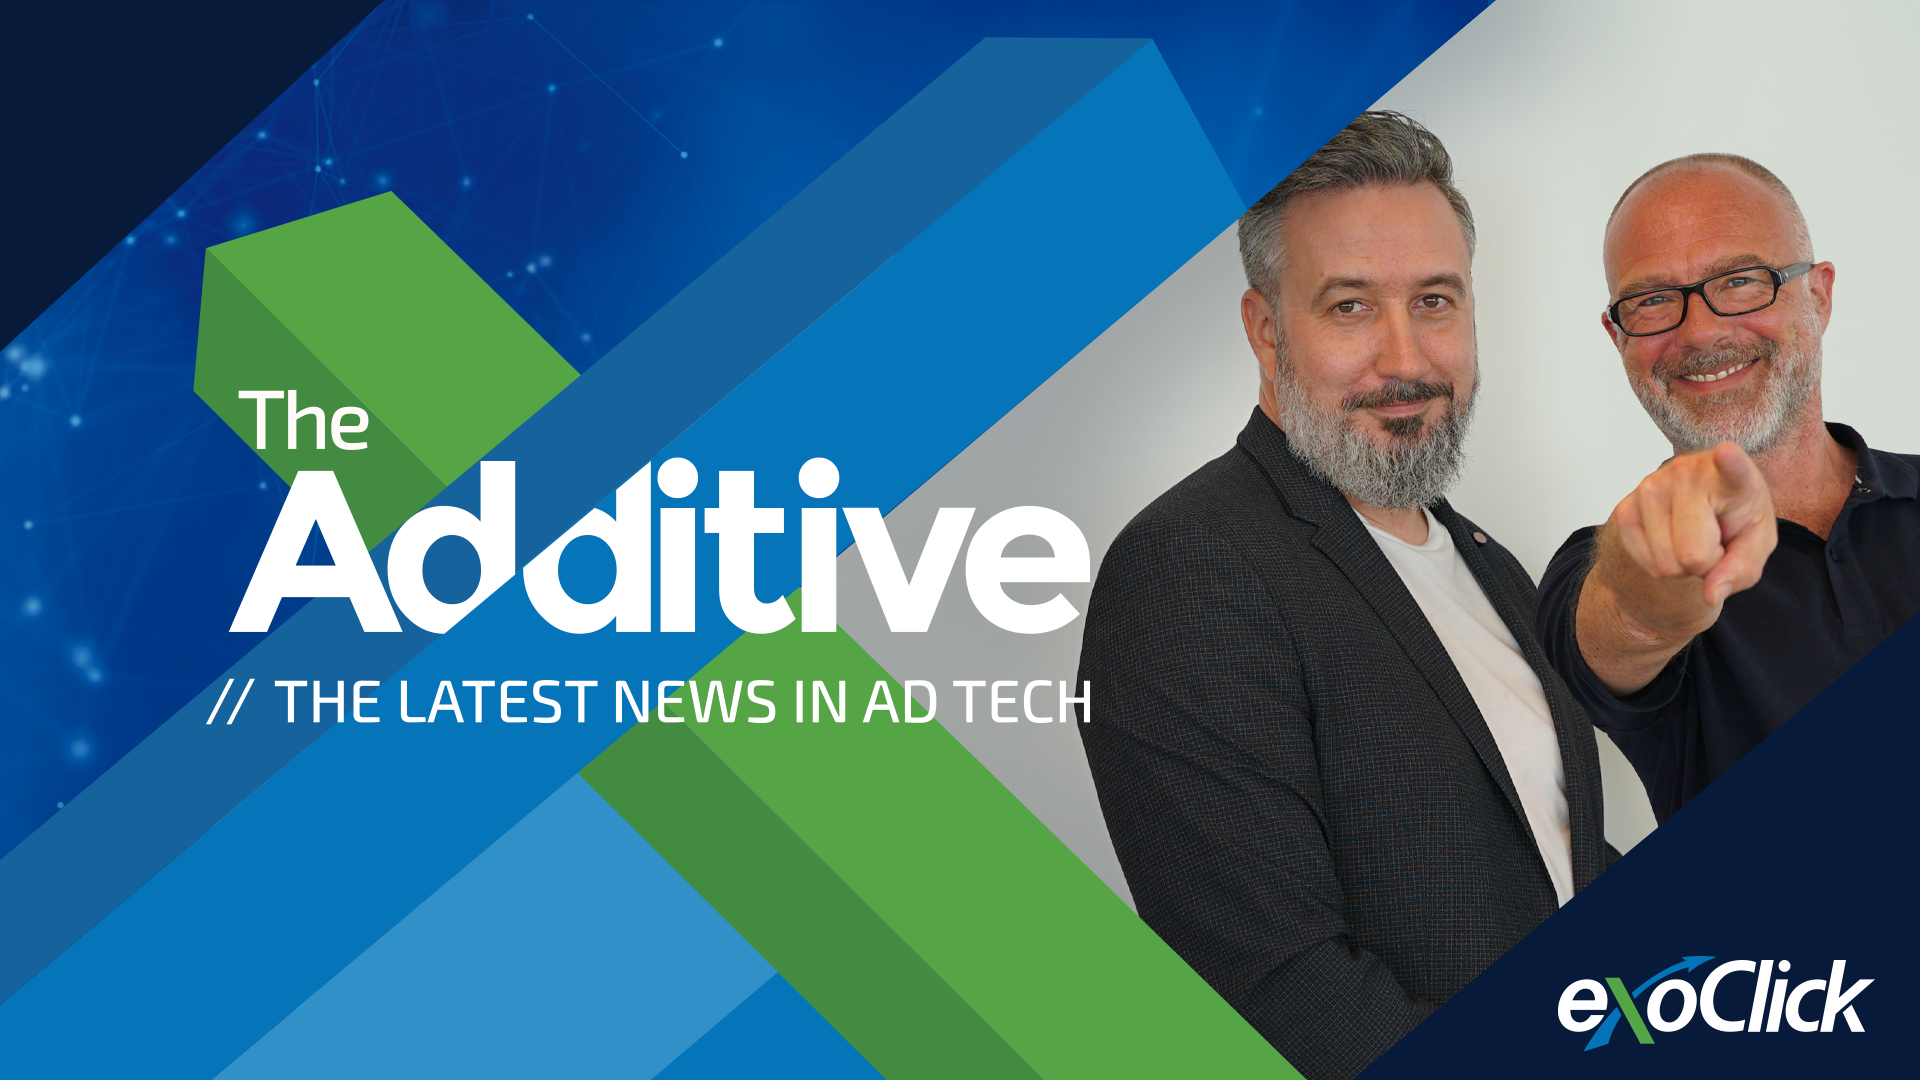 The Additive August 2019